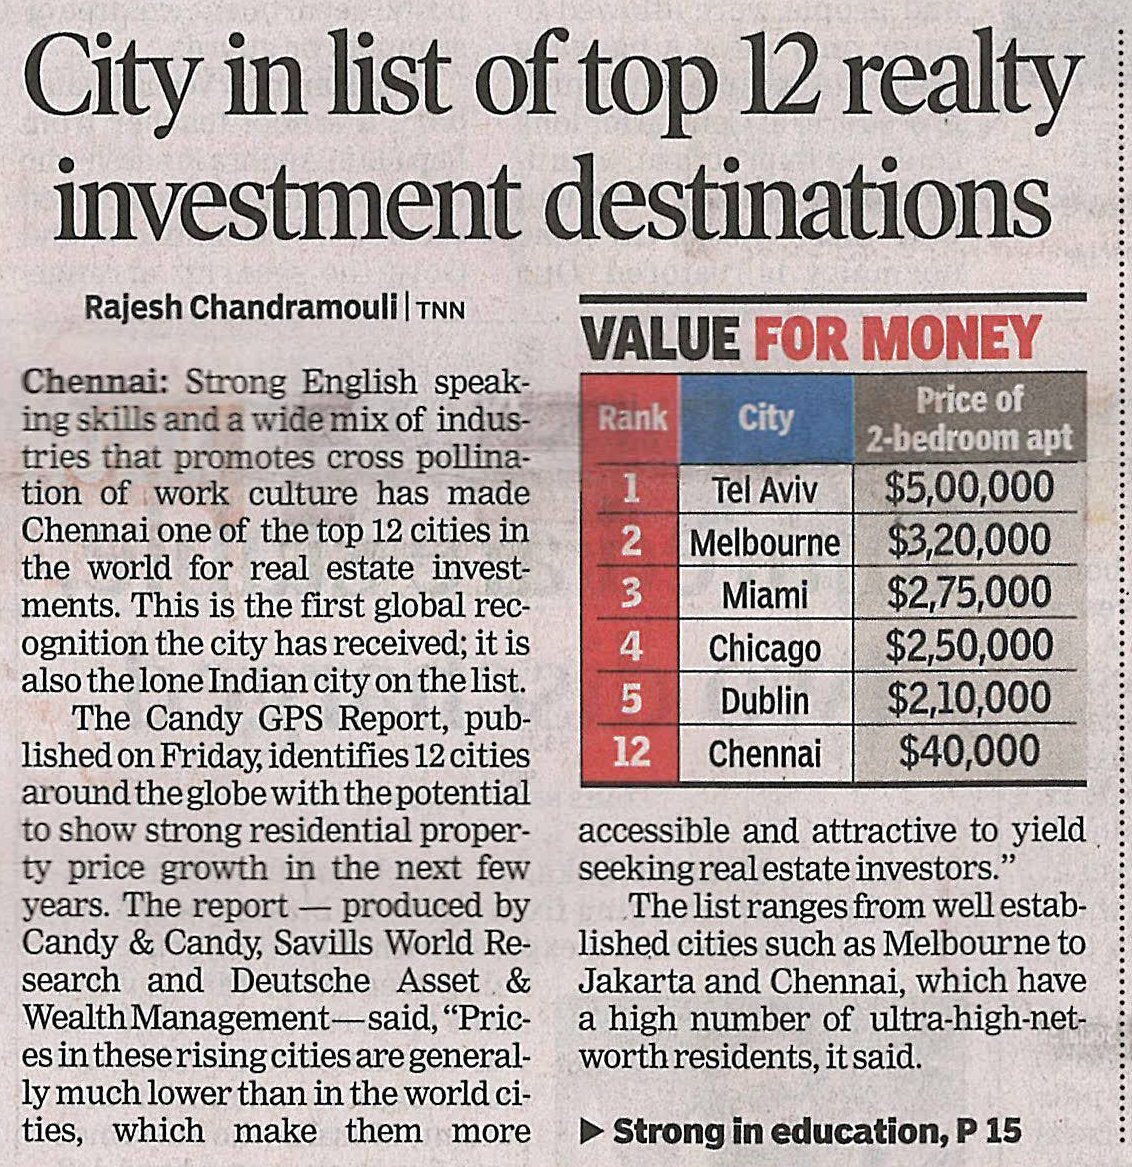 City in list of Top 12 realty investment destinations